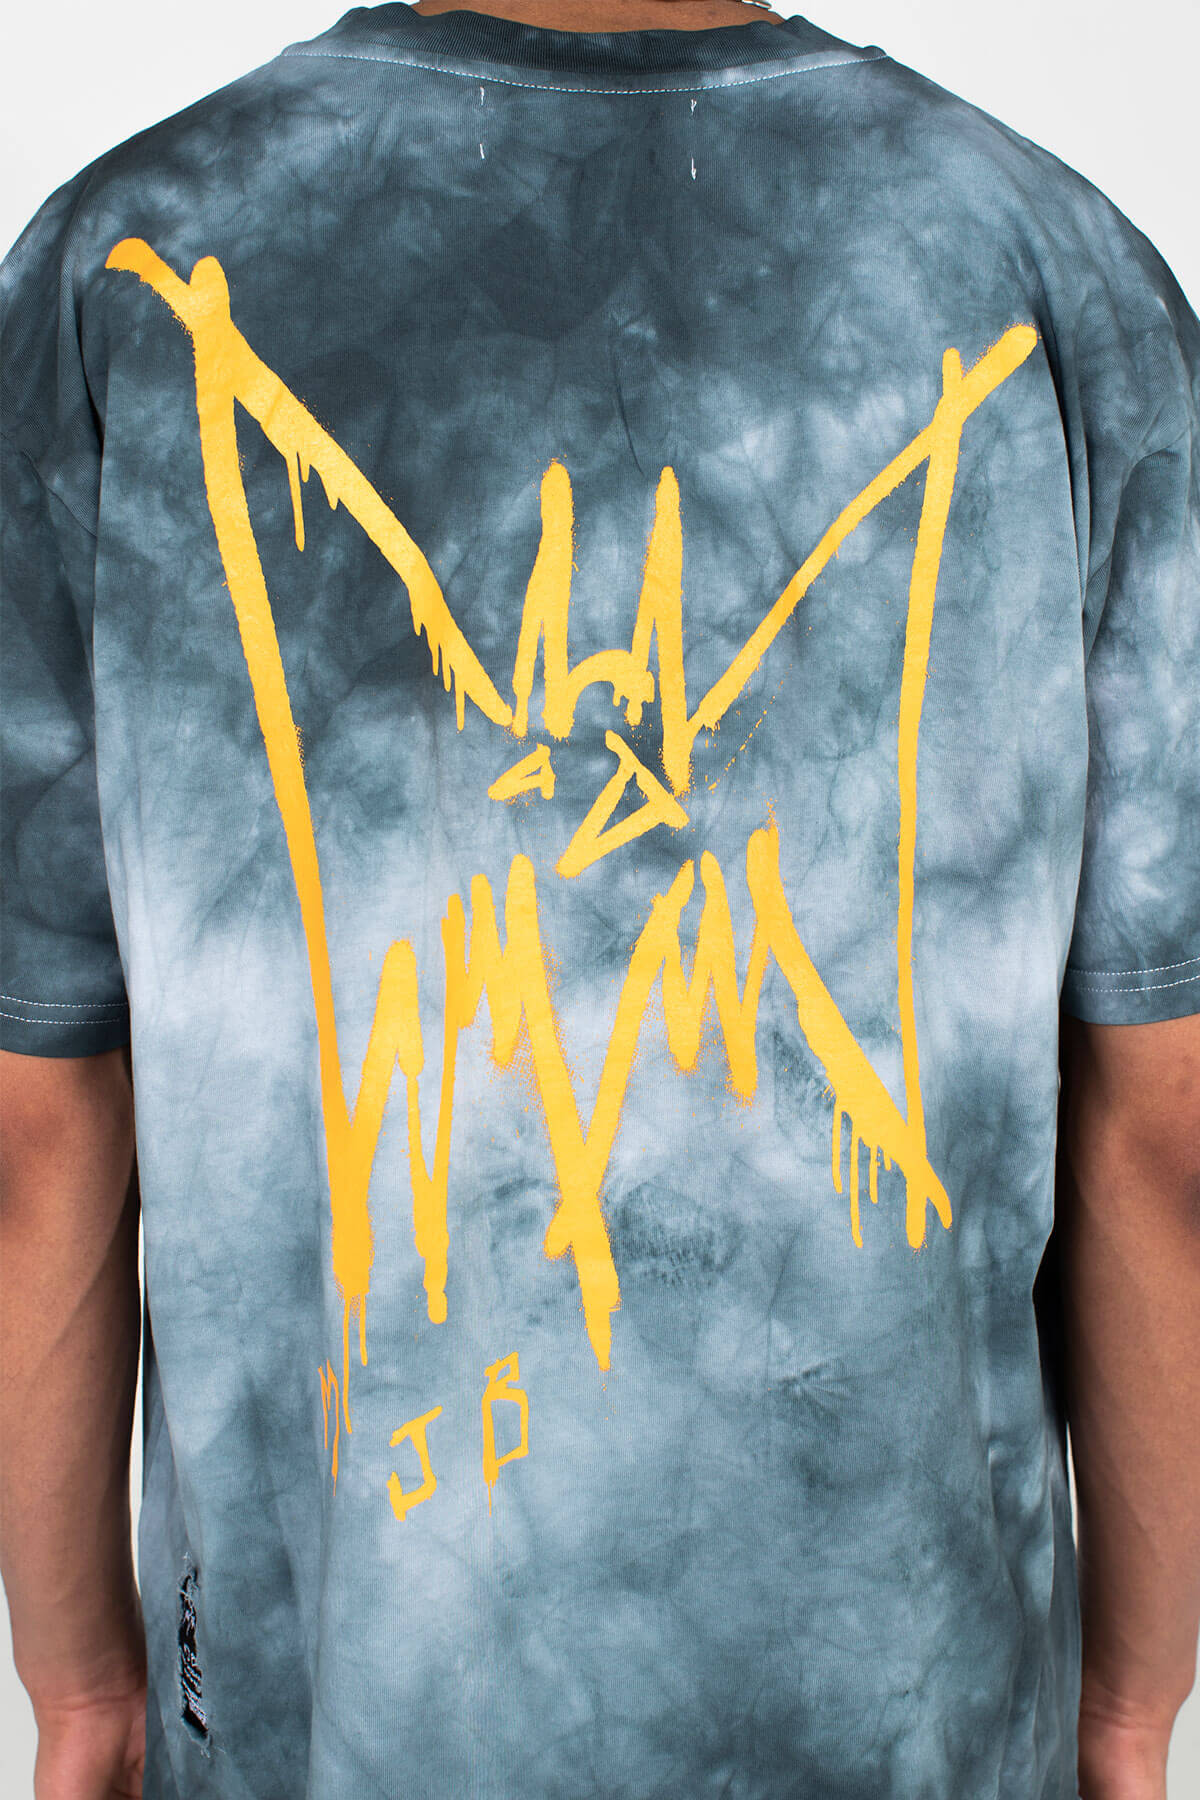 FESTIVAL T SHIRT – LIMITED EDITION TIE DYE BAT - TOP - MJB